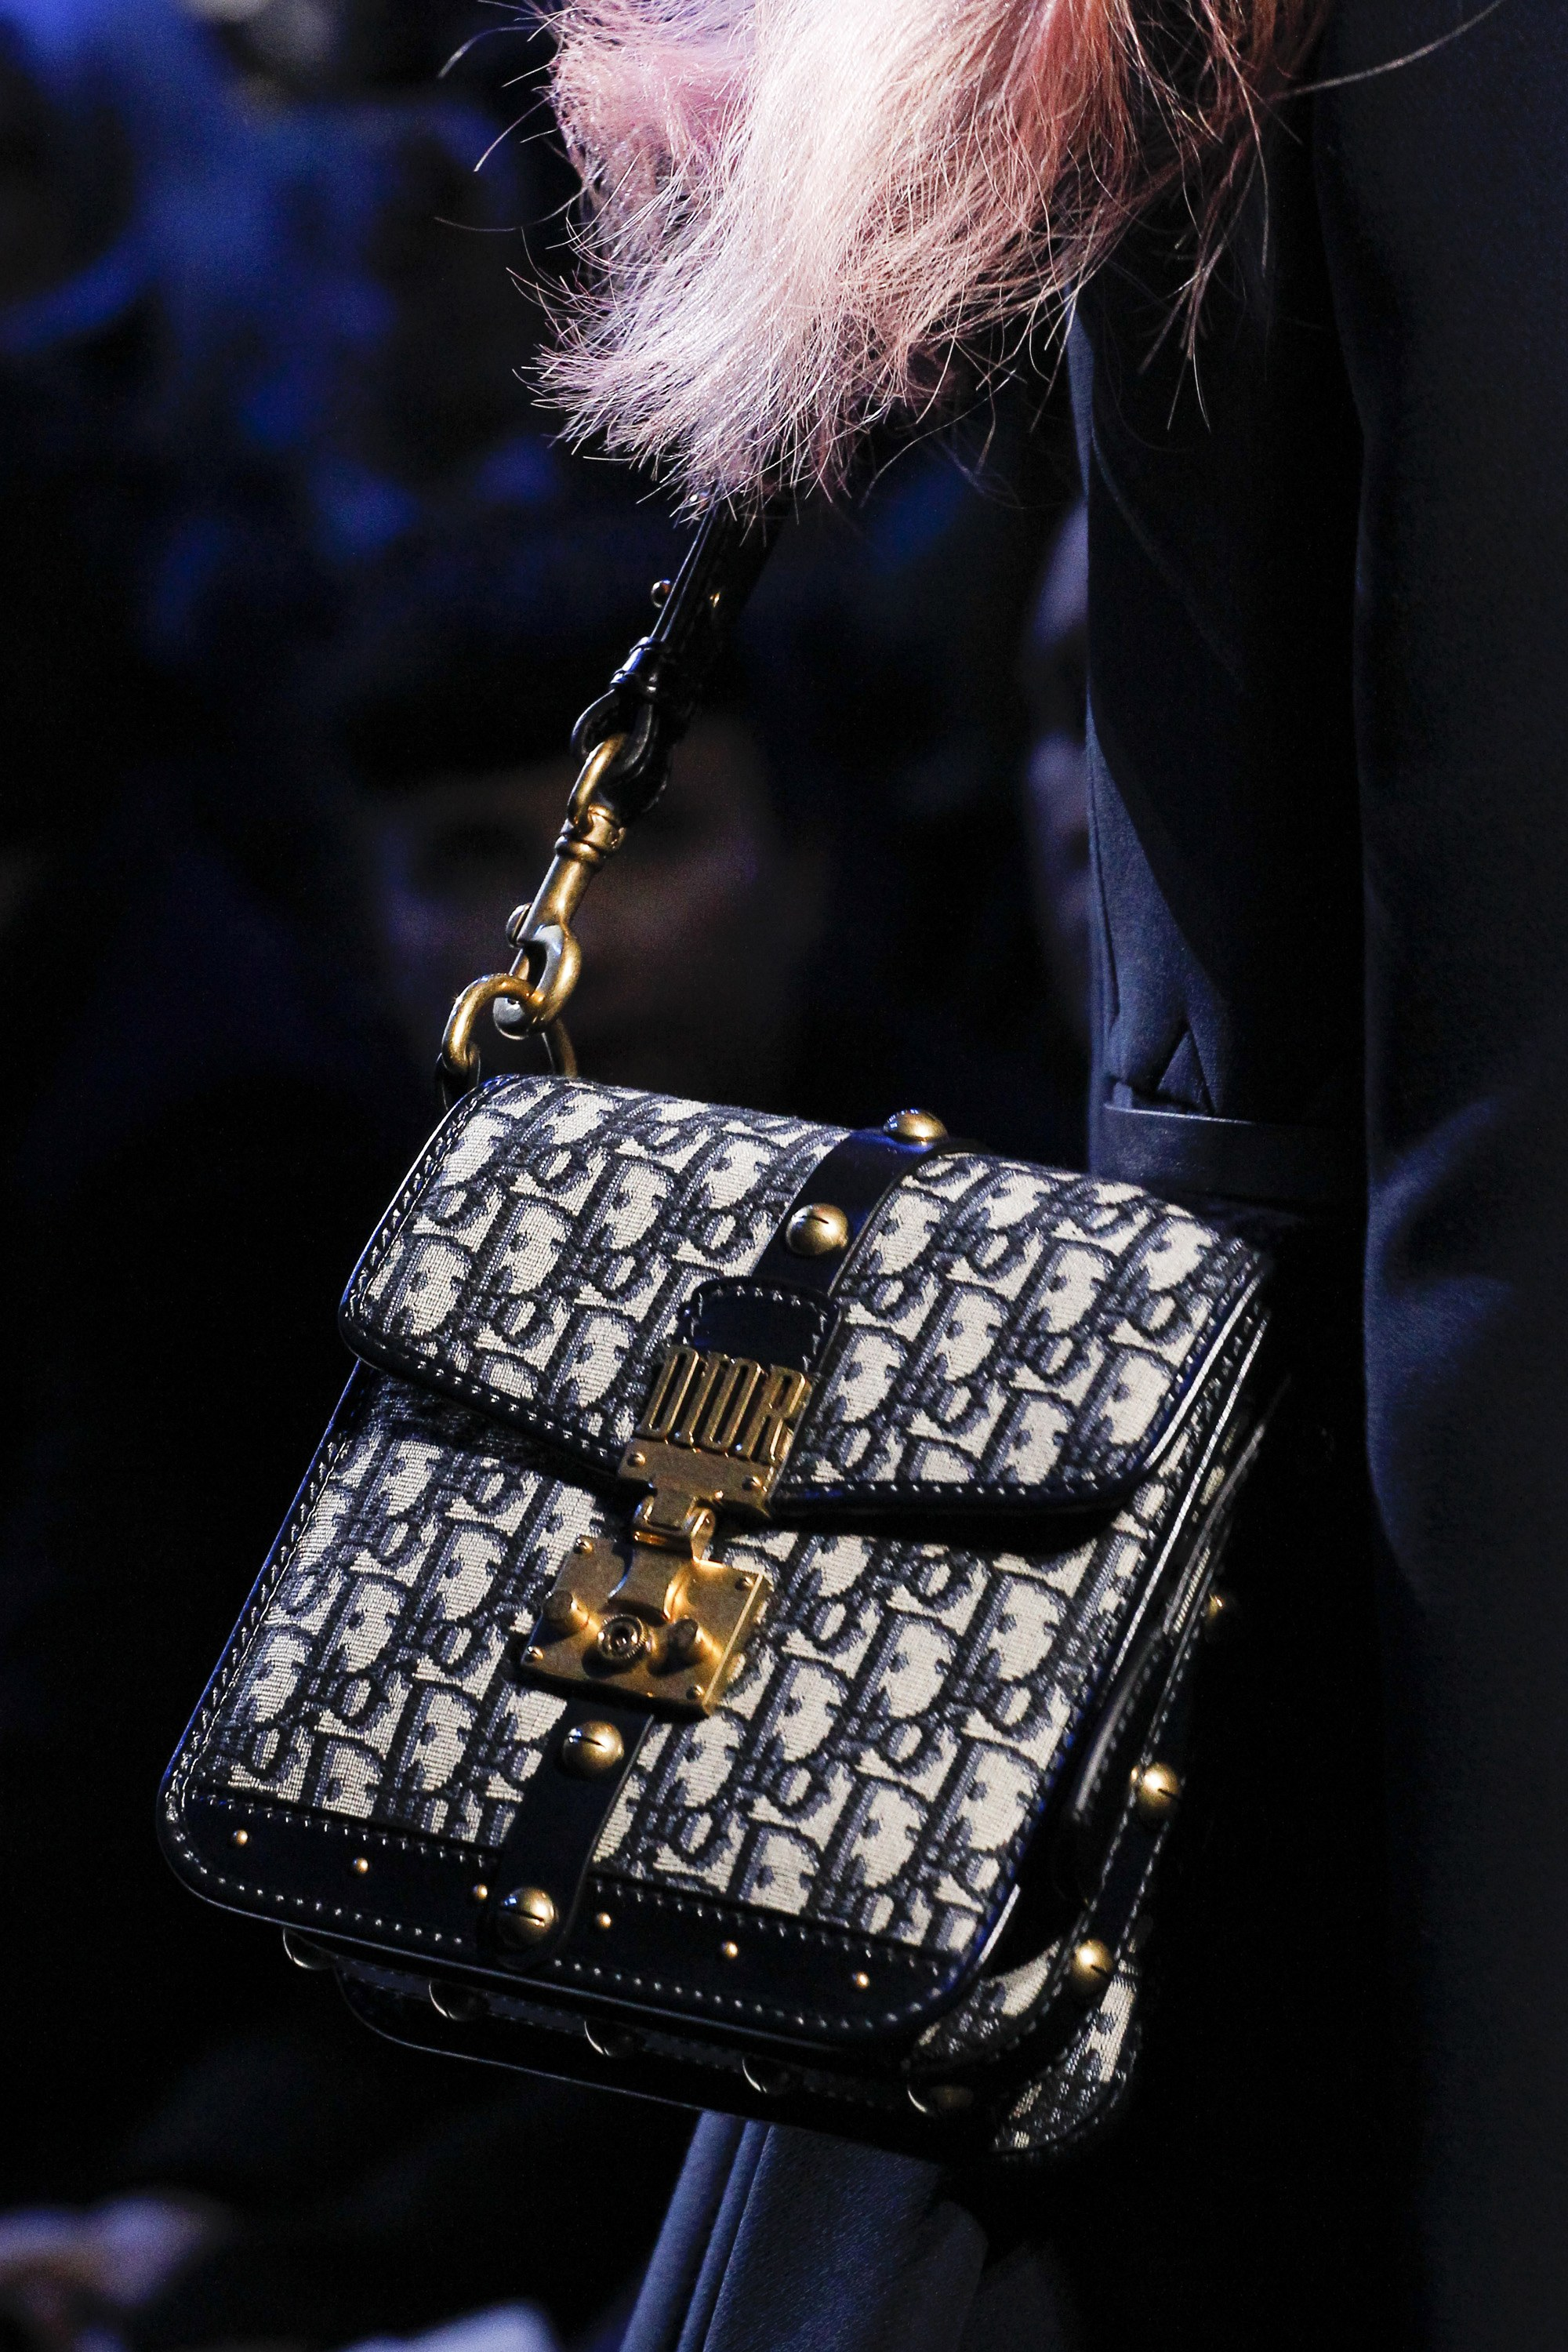 fabd7f4a8 Dior Fall/Winter 2017 Runway Bag Collection | Spotted Fashion